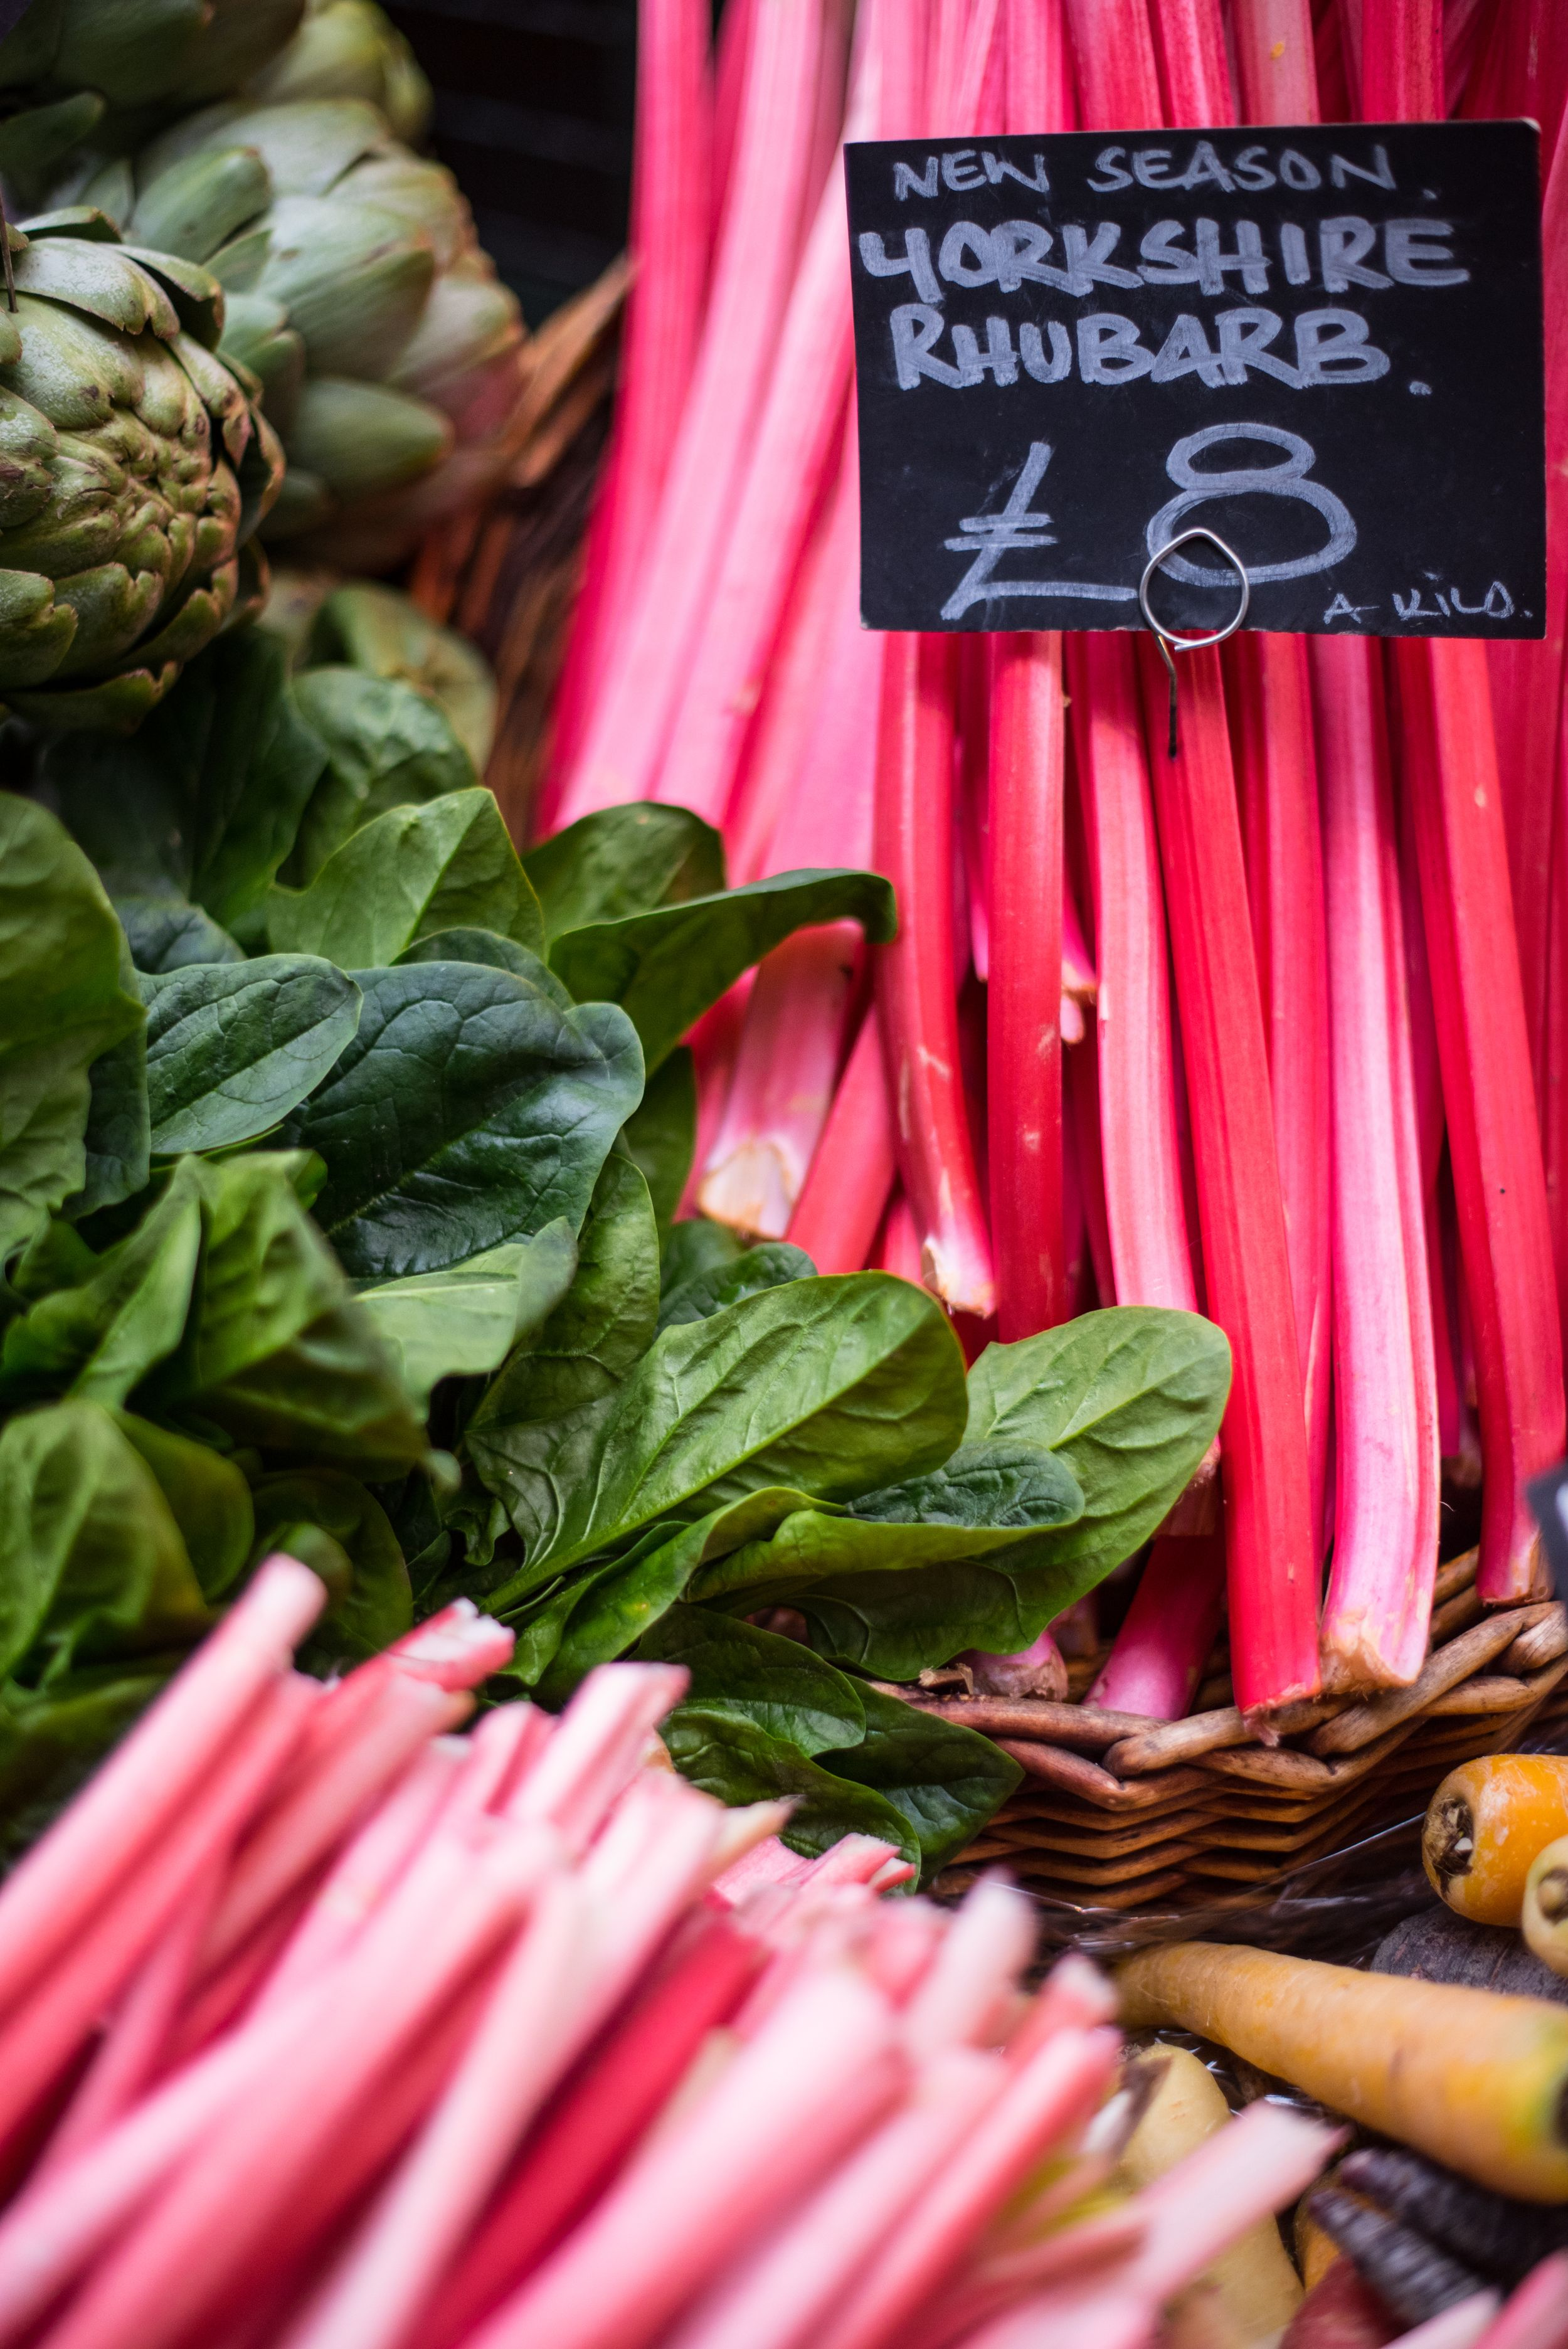 Yorkshire Rhubarb at  Borough Market